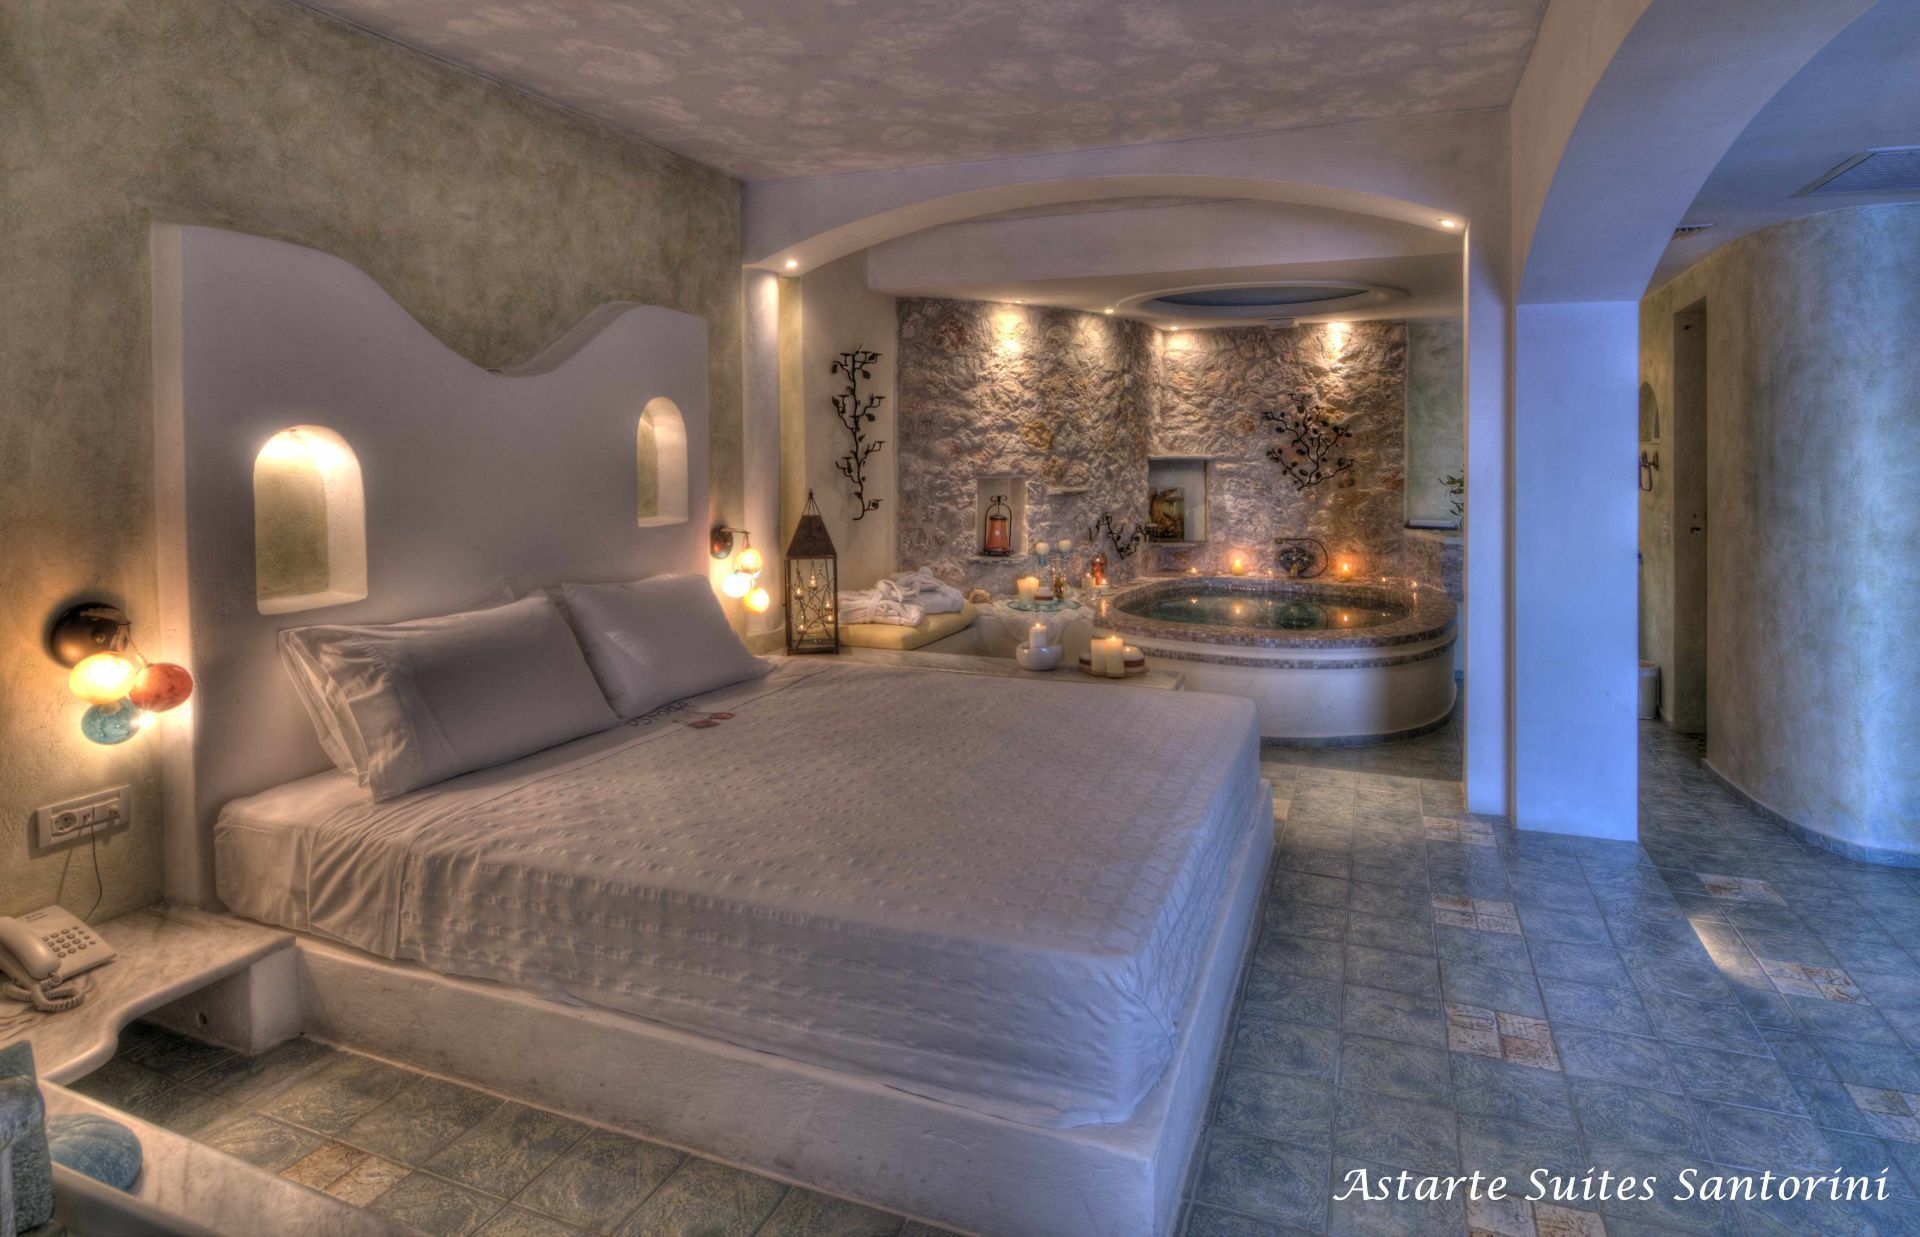 Astarte Suites is a luxurious 9 all suite boutique hotel located on